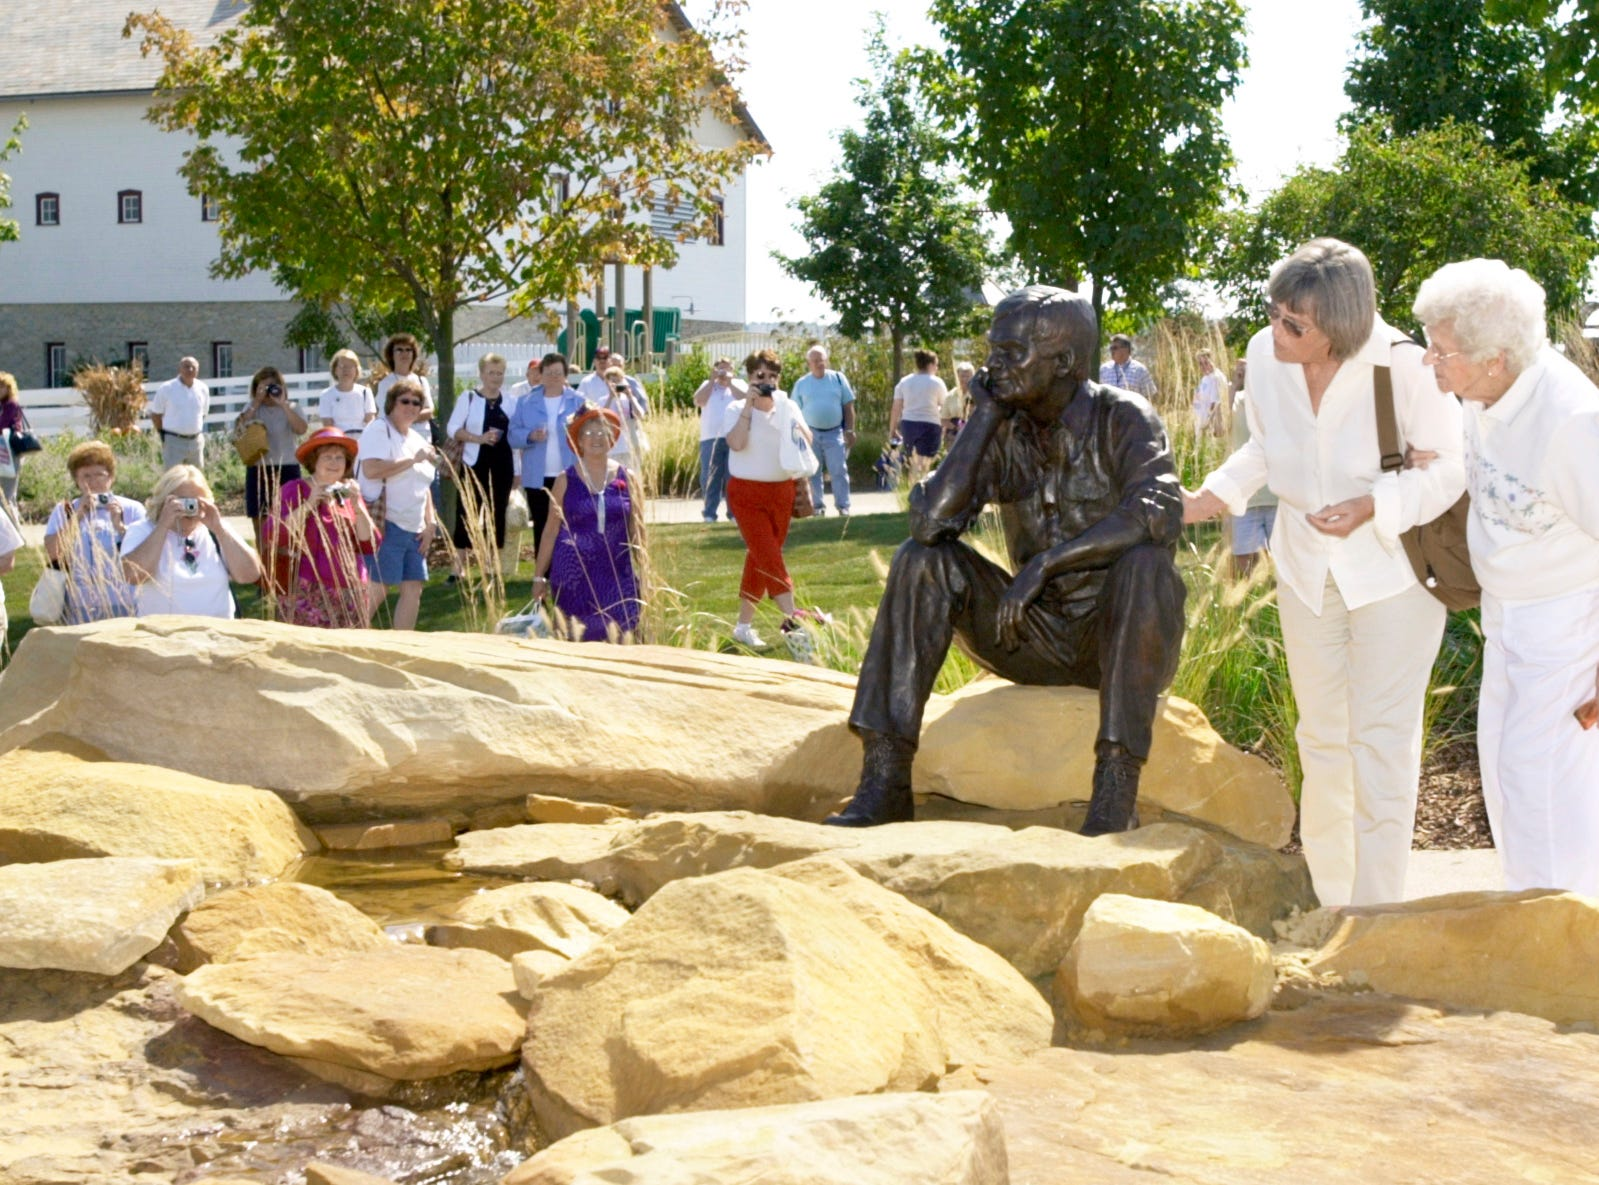 A Times Recorder file photo from the unveiling of the Dave Longaberger statue at the Longaberger Homestead in Frazeysburg in 2002.